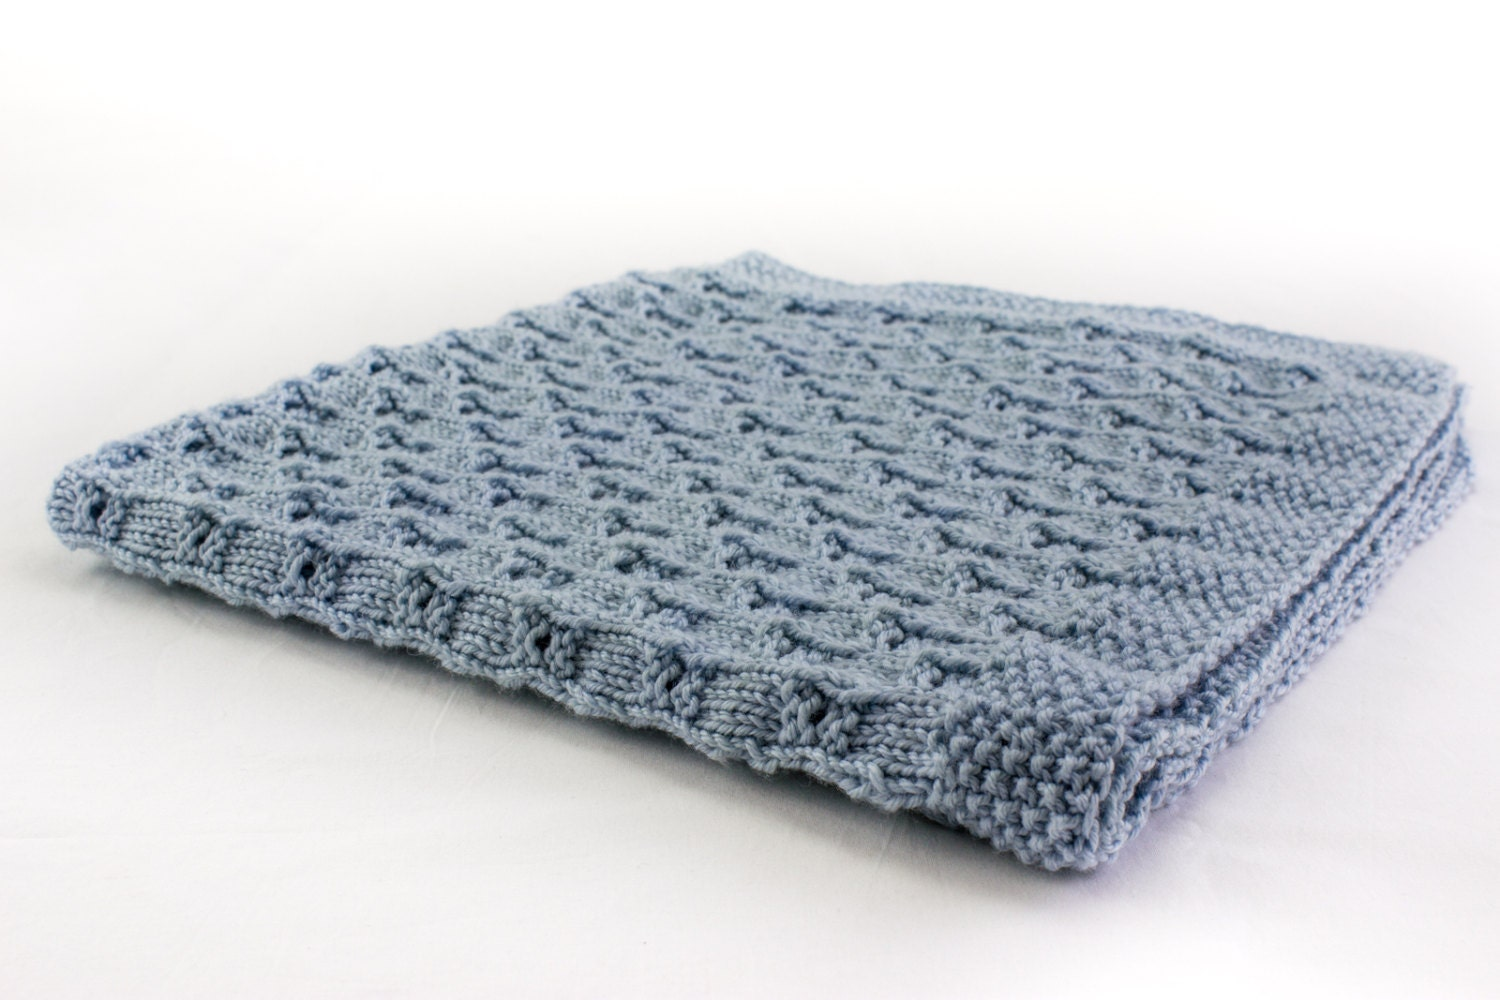 Free Online Knitting Patterns For Baby Blankets : KNITTING PATTERN Baby Blanket Knitting Pattern 8 ply Yarn